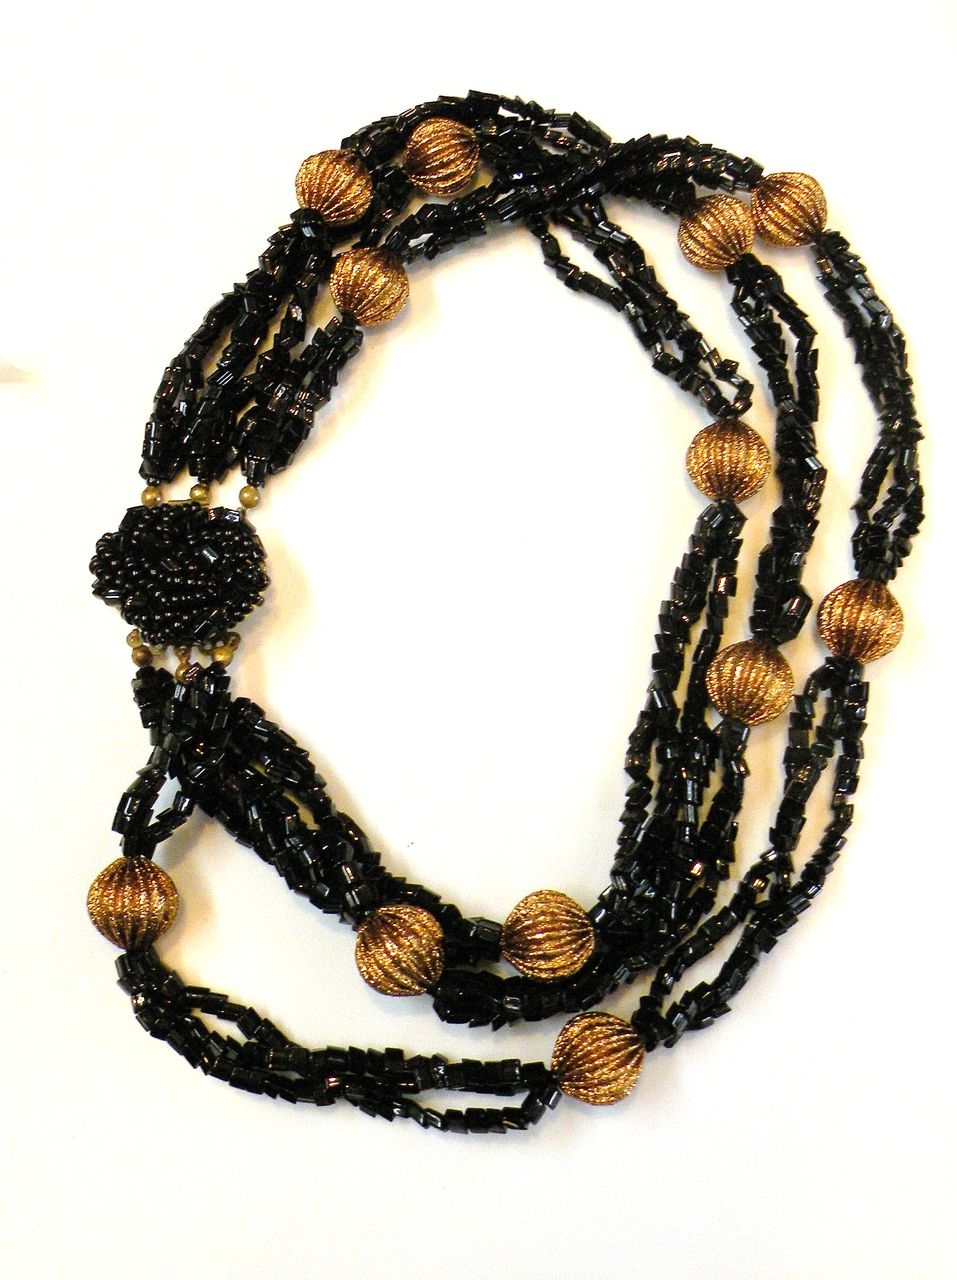 Black and Copper Colored Multi Strand Beaded Torsade Necklace